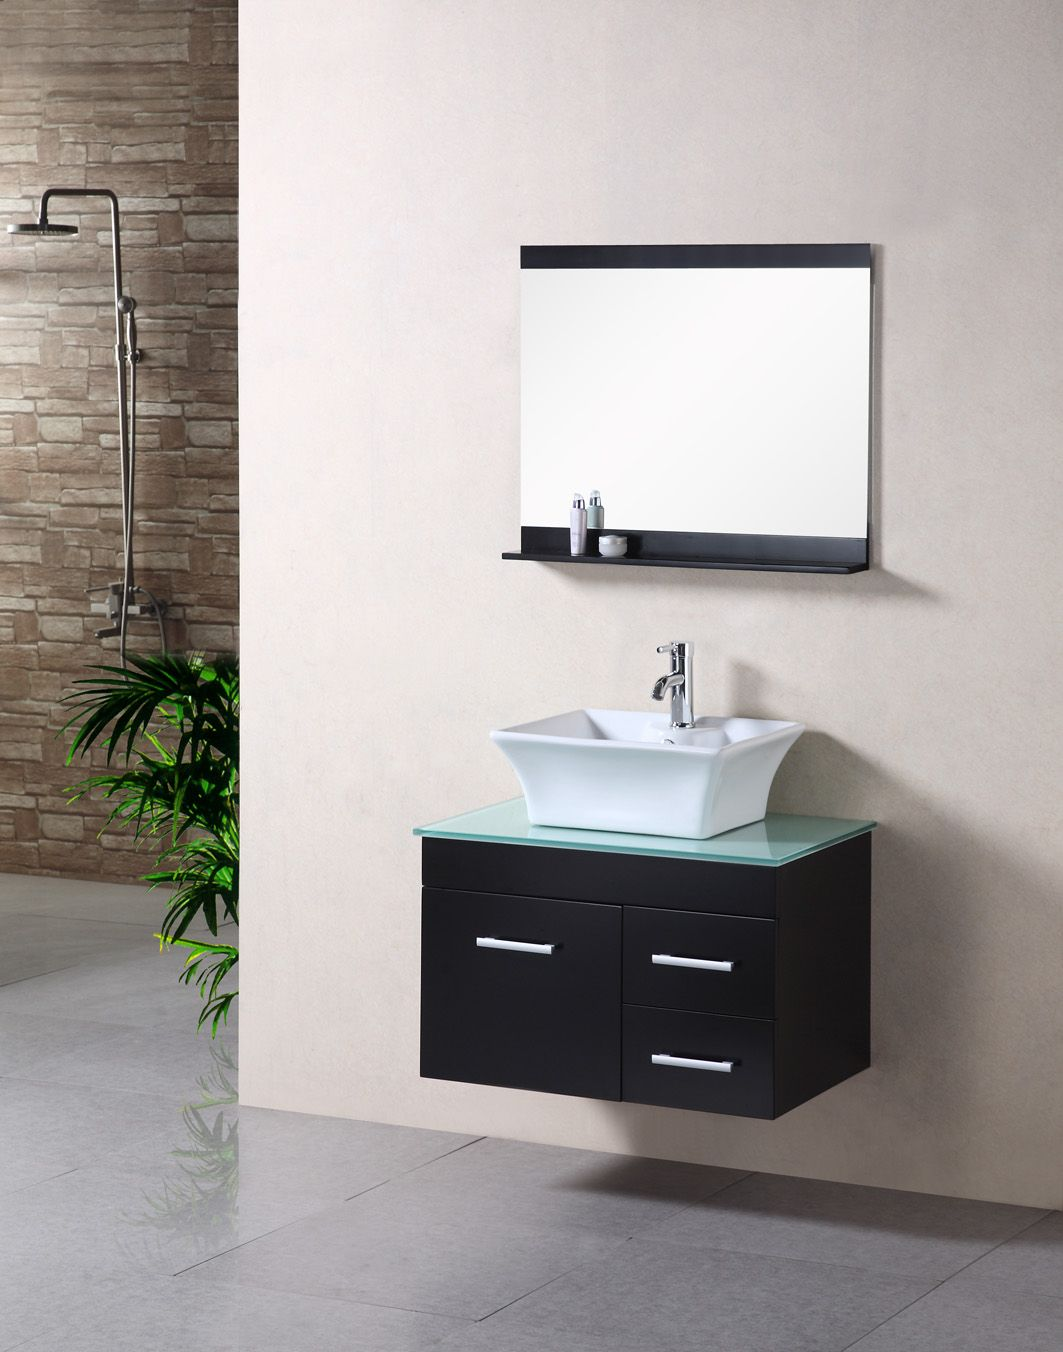 Here Are Few Ideas Of Floating Bathroom Vanity For You To Implement Floatingbathroomvanity Floatingbathroom Bathroomvanity